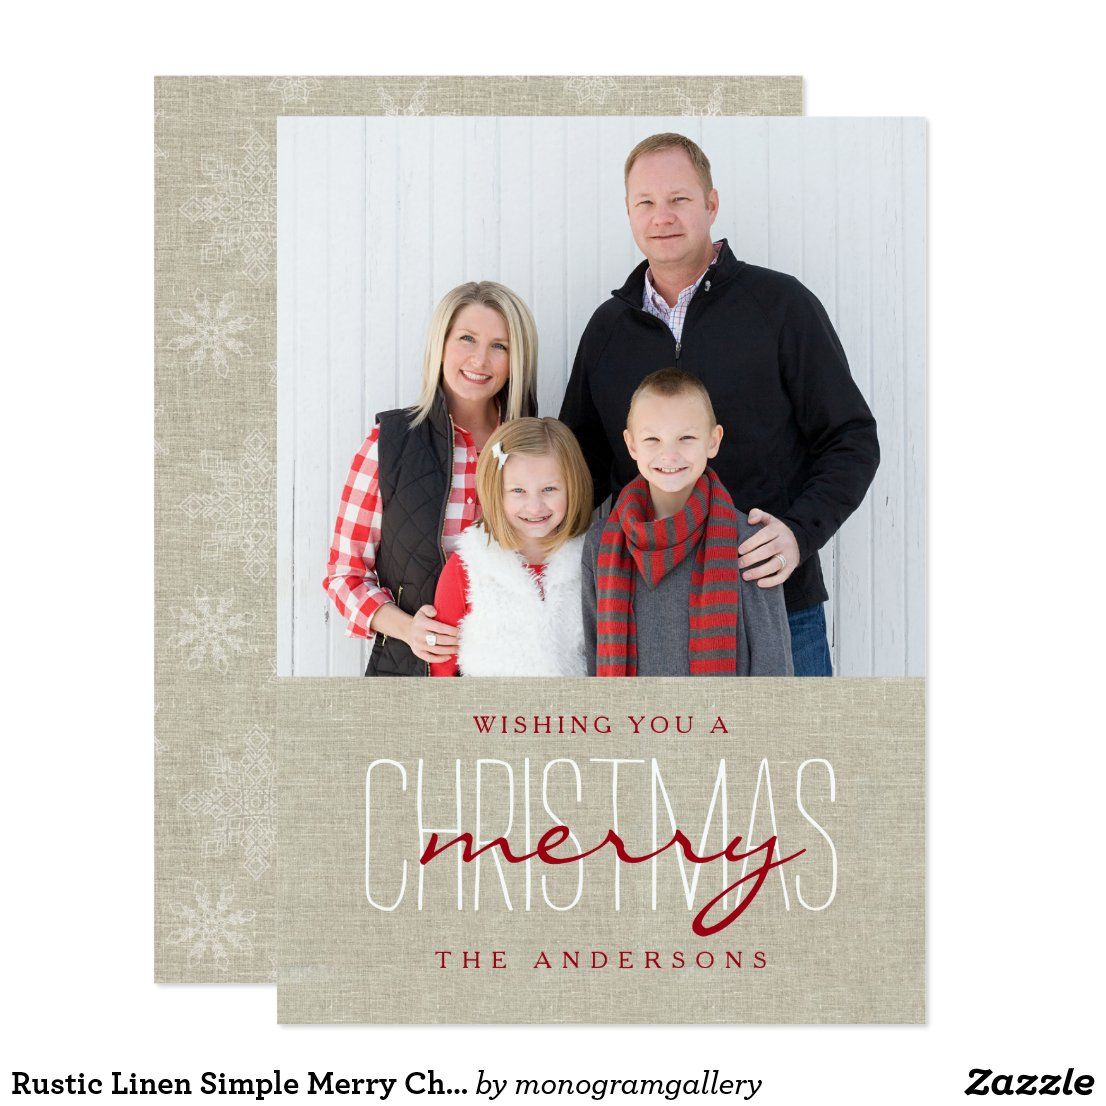 Rustic Linen Simple Merry Christmas Holiday Photo Card